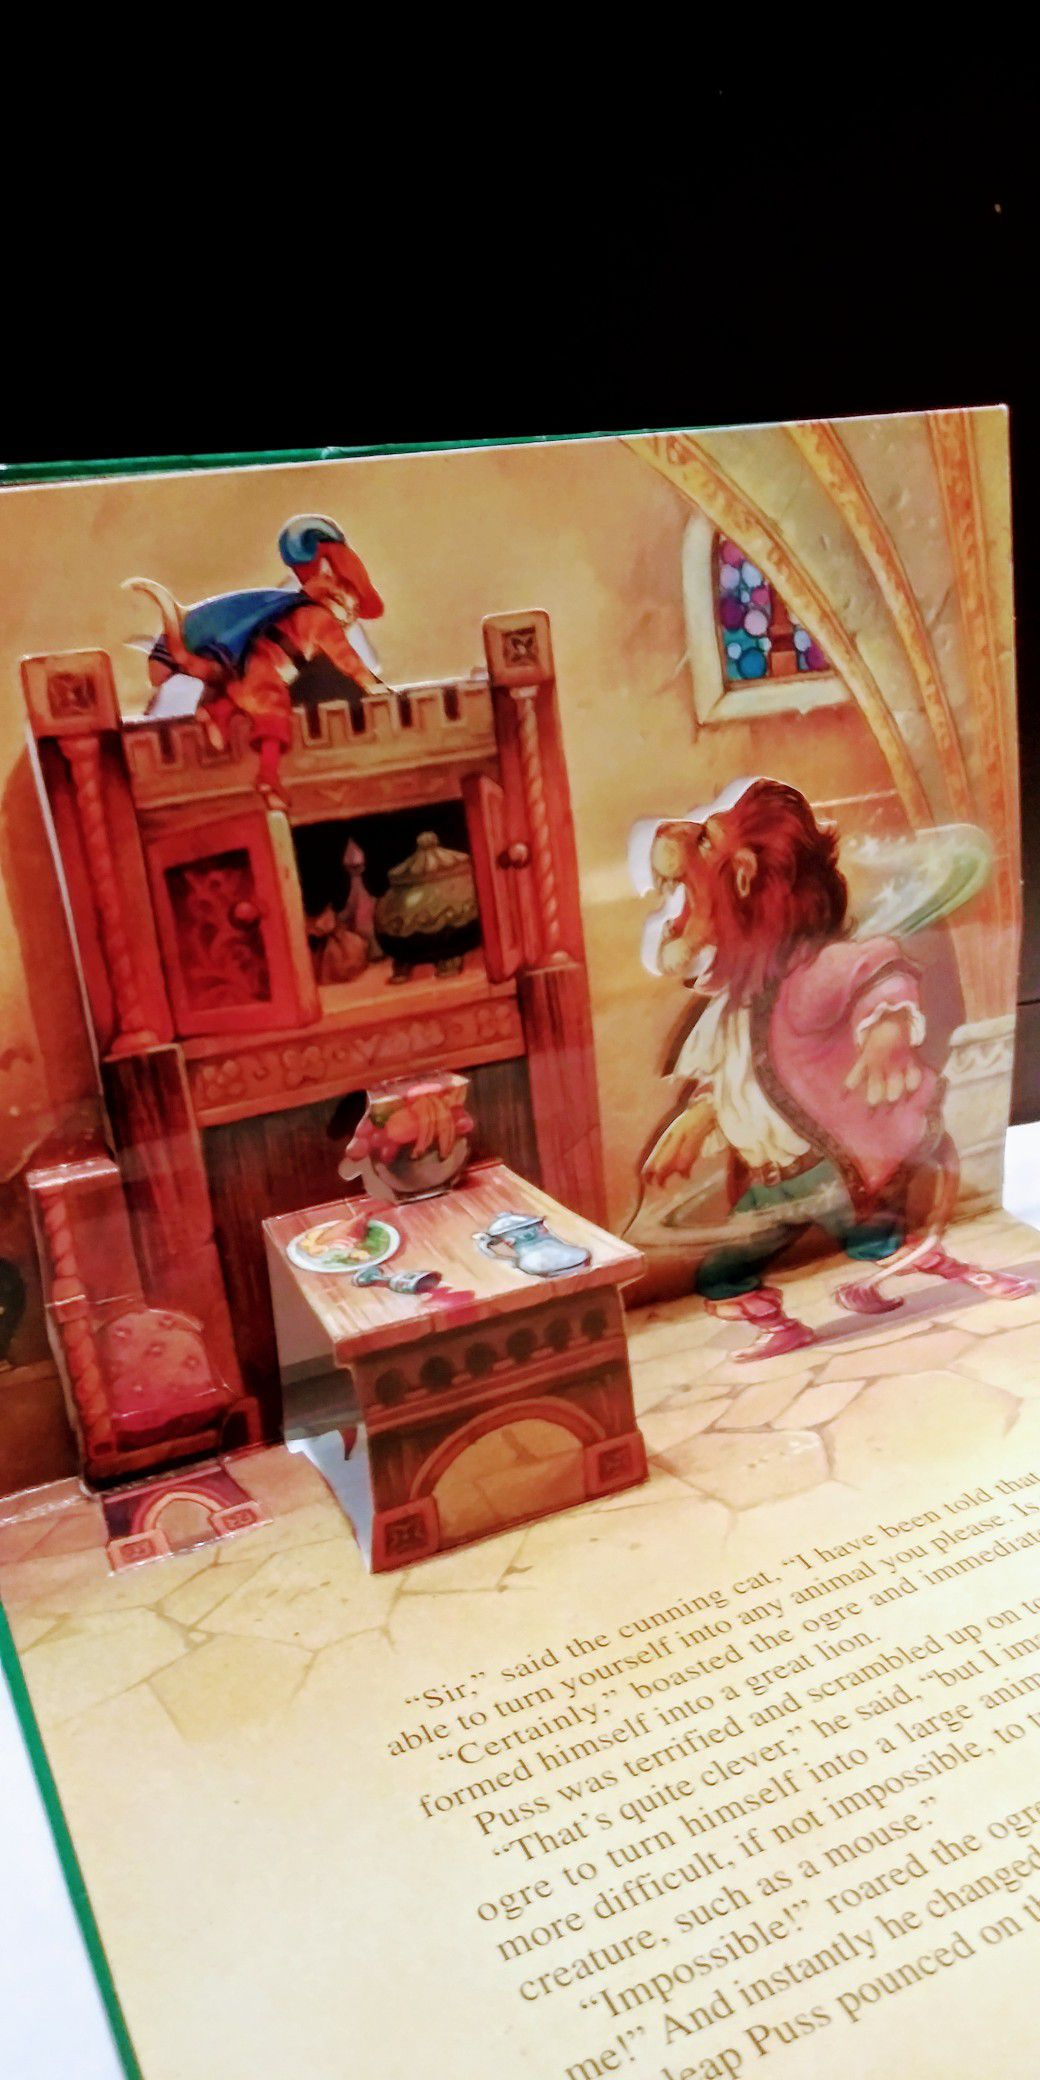 Puss in Boots- Fairy Tale Favorites, Pop-Up Book, Illustrated by John Patience